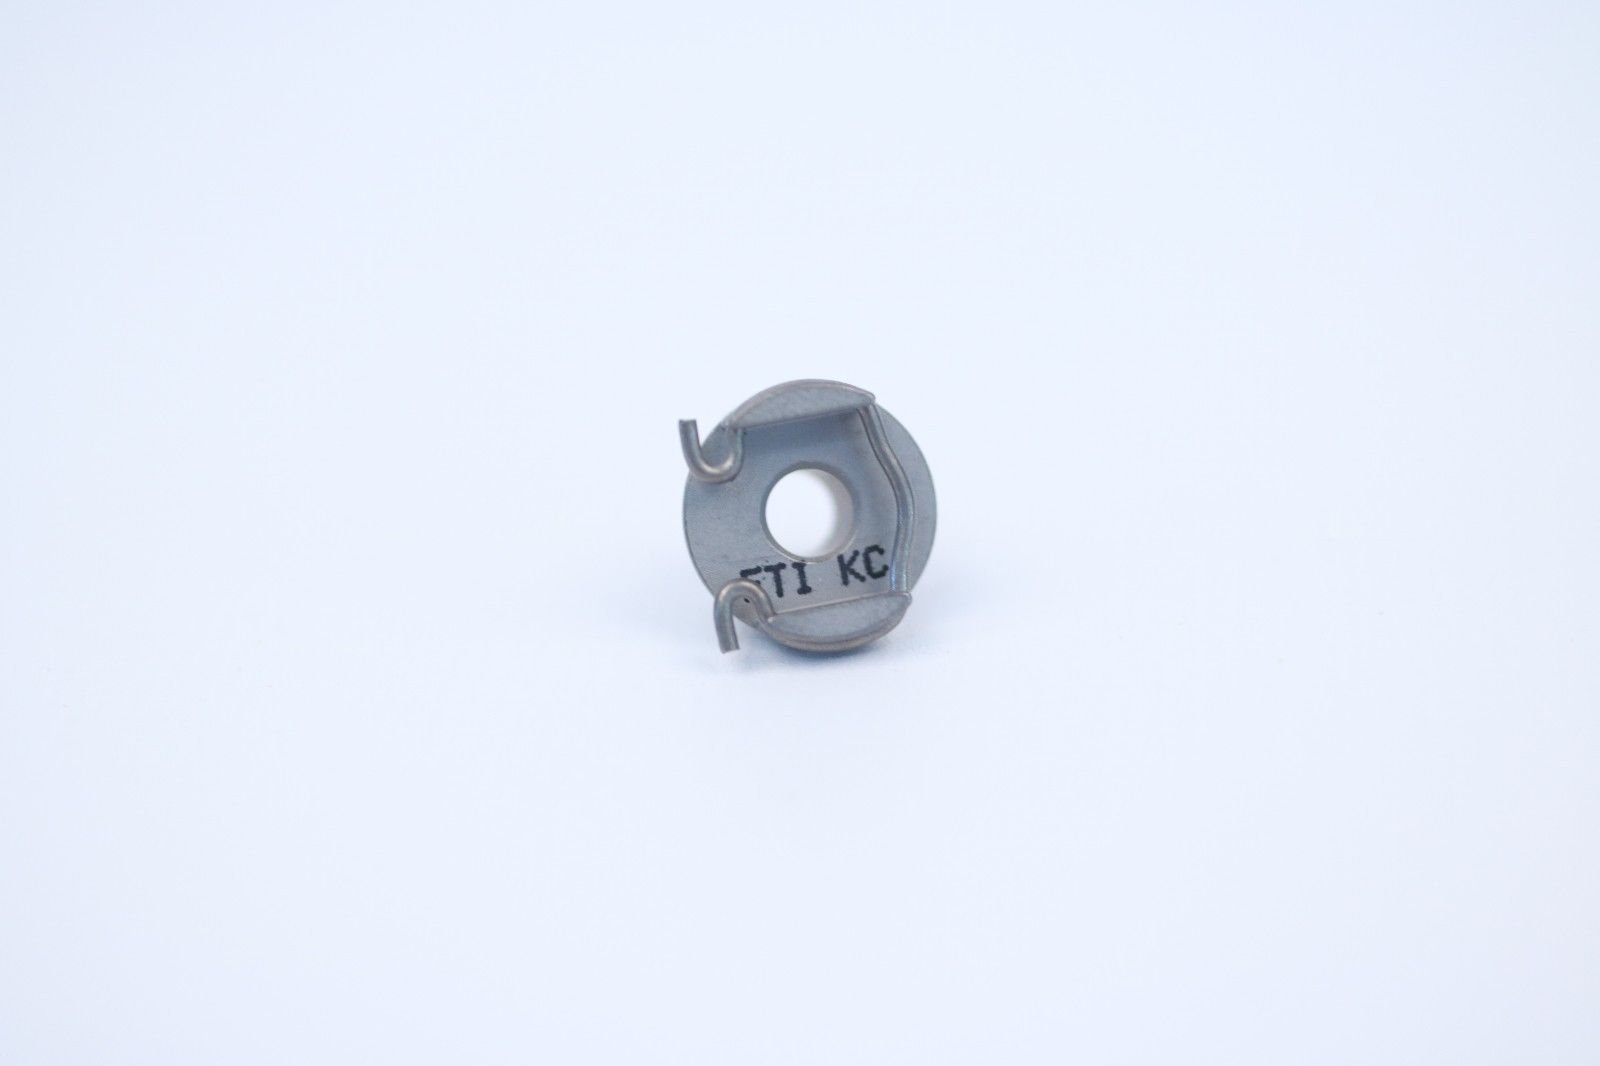 Fatigue Technology Int. Retainer Seal Rivetless Nut Plate Steel Aircraft F-15 by Fatigue Technology International (Image #4)